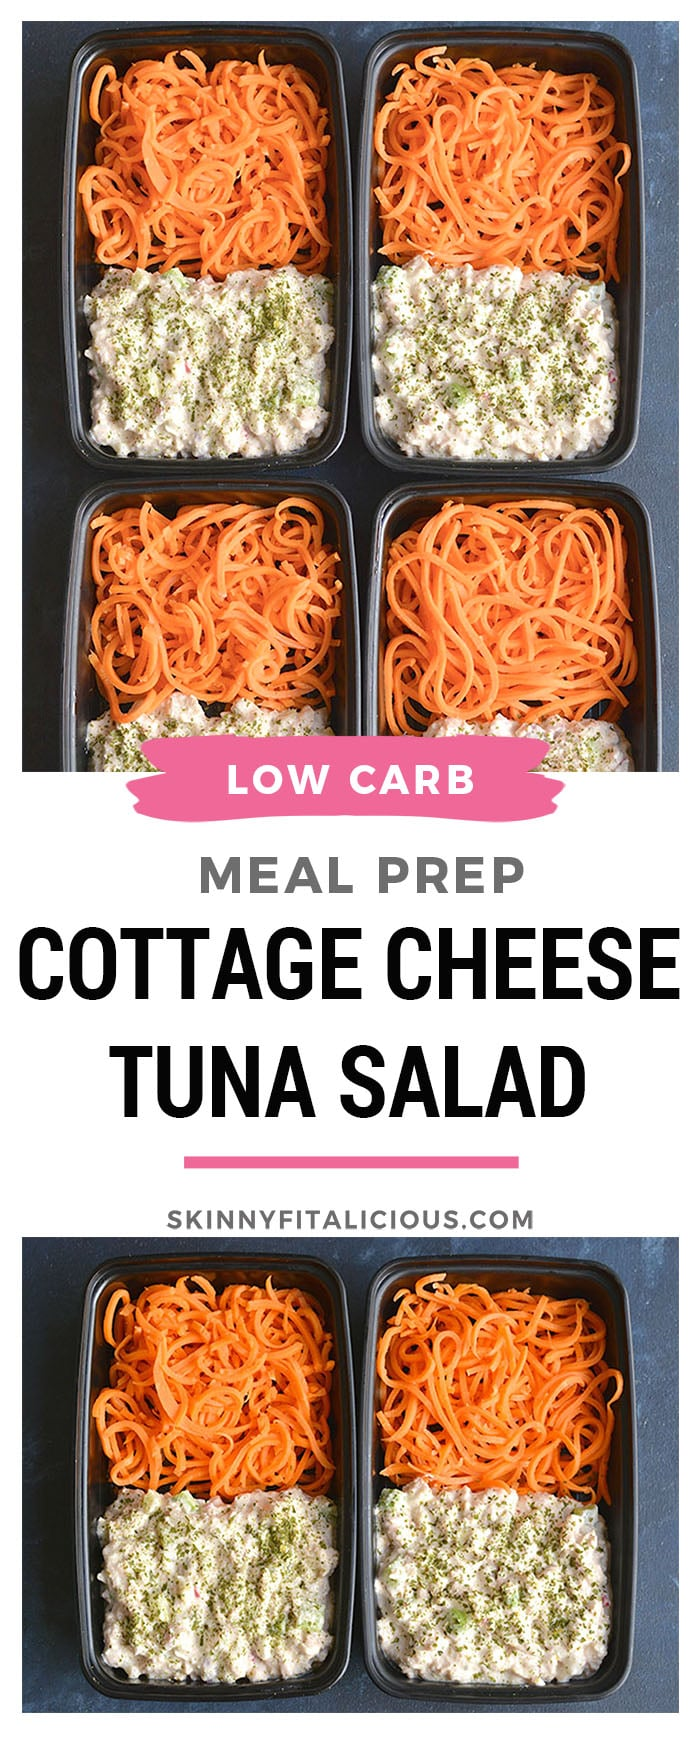 Meal Prep Cottage Cheese Tuna Salad! This high protein tuna salad is perfect for meal prep or a BBQ. Blended cottage cheese and seasonings is tossed with tuna, celery and radishes for a refreshing and filling meal. Pair with carrotnoodles or your favorite low carb veggie side! Gluten Free + LowCalorie + Low Carb